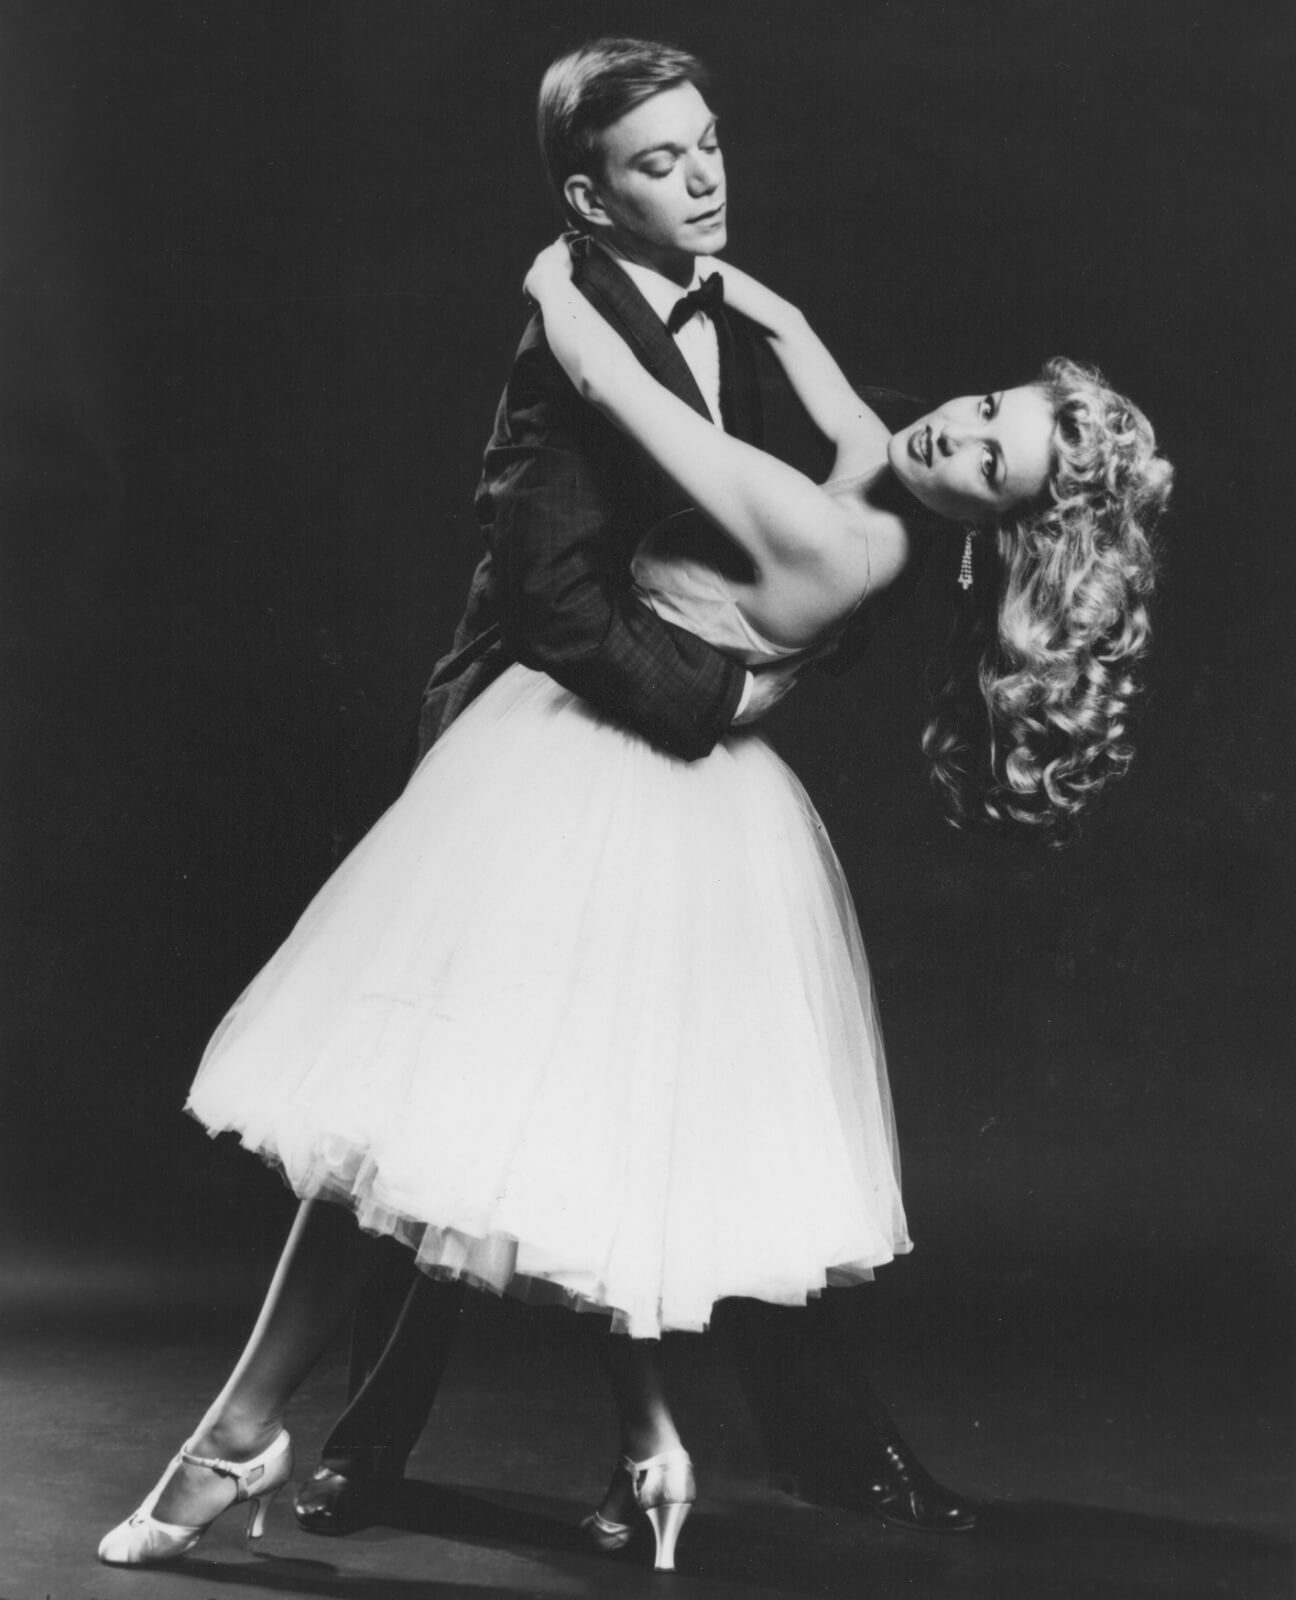 """Jeff Veazey and Susan Stroman dancing to """"The Best Things Happen While Your'e Dancing"""". Jeff has Susan in a dip with her focus out front."""